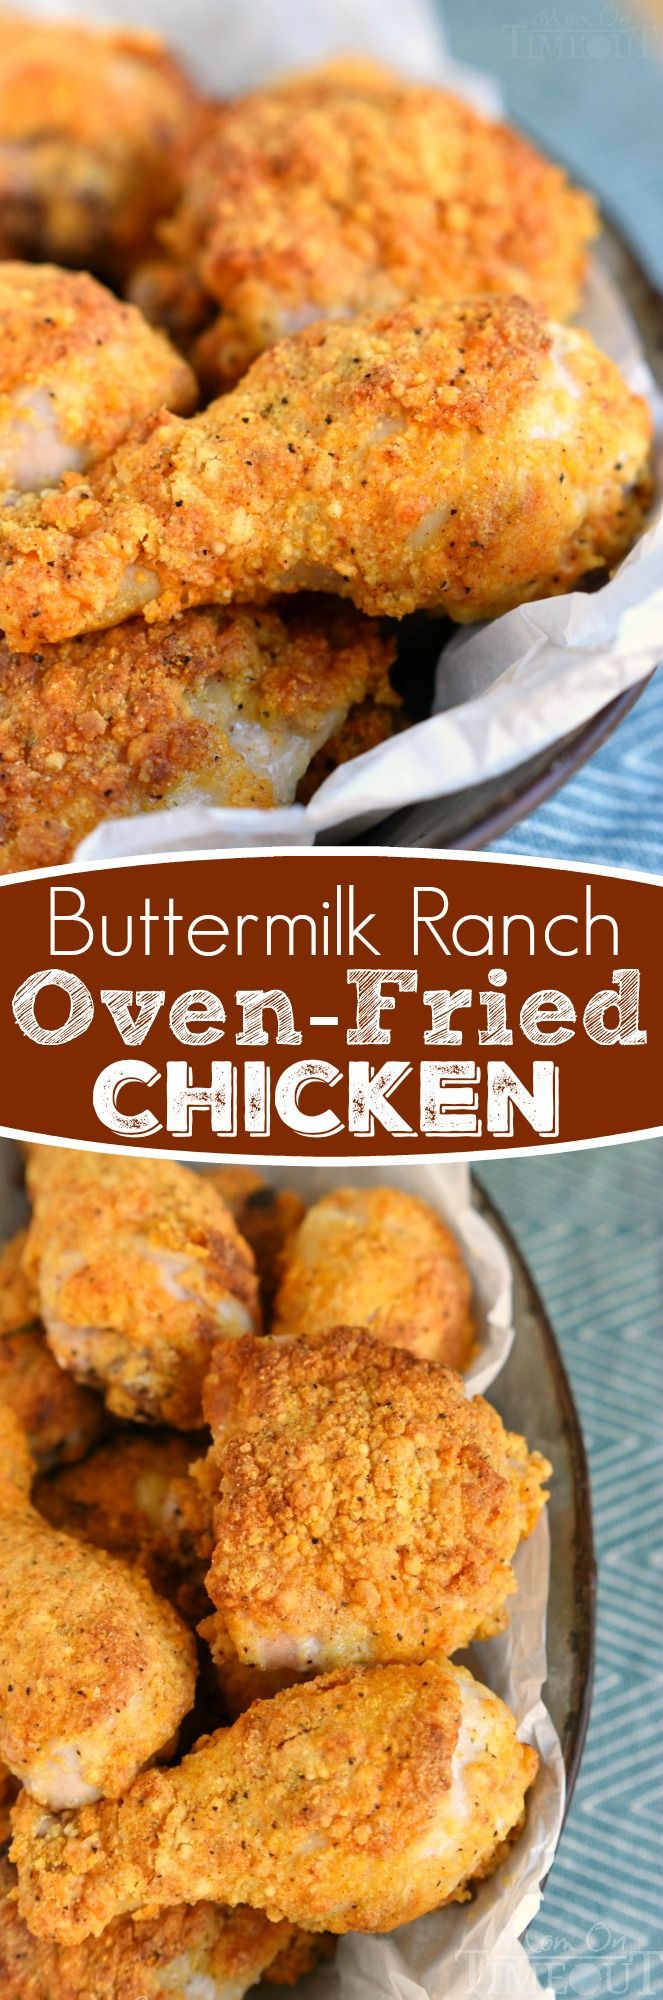 10 best ideas about ranch chicken on pinterest baked ranch chicken baked dinner recipes and - Easy oven dinner ...